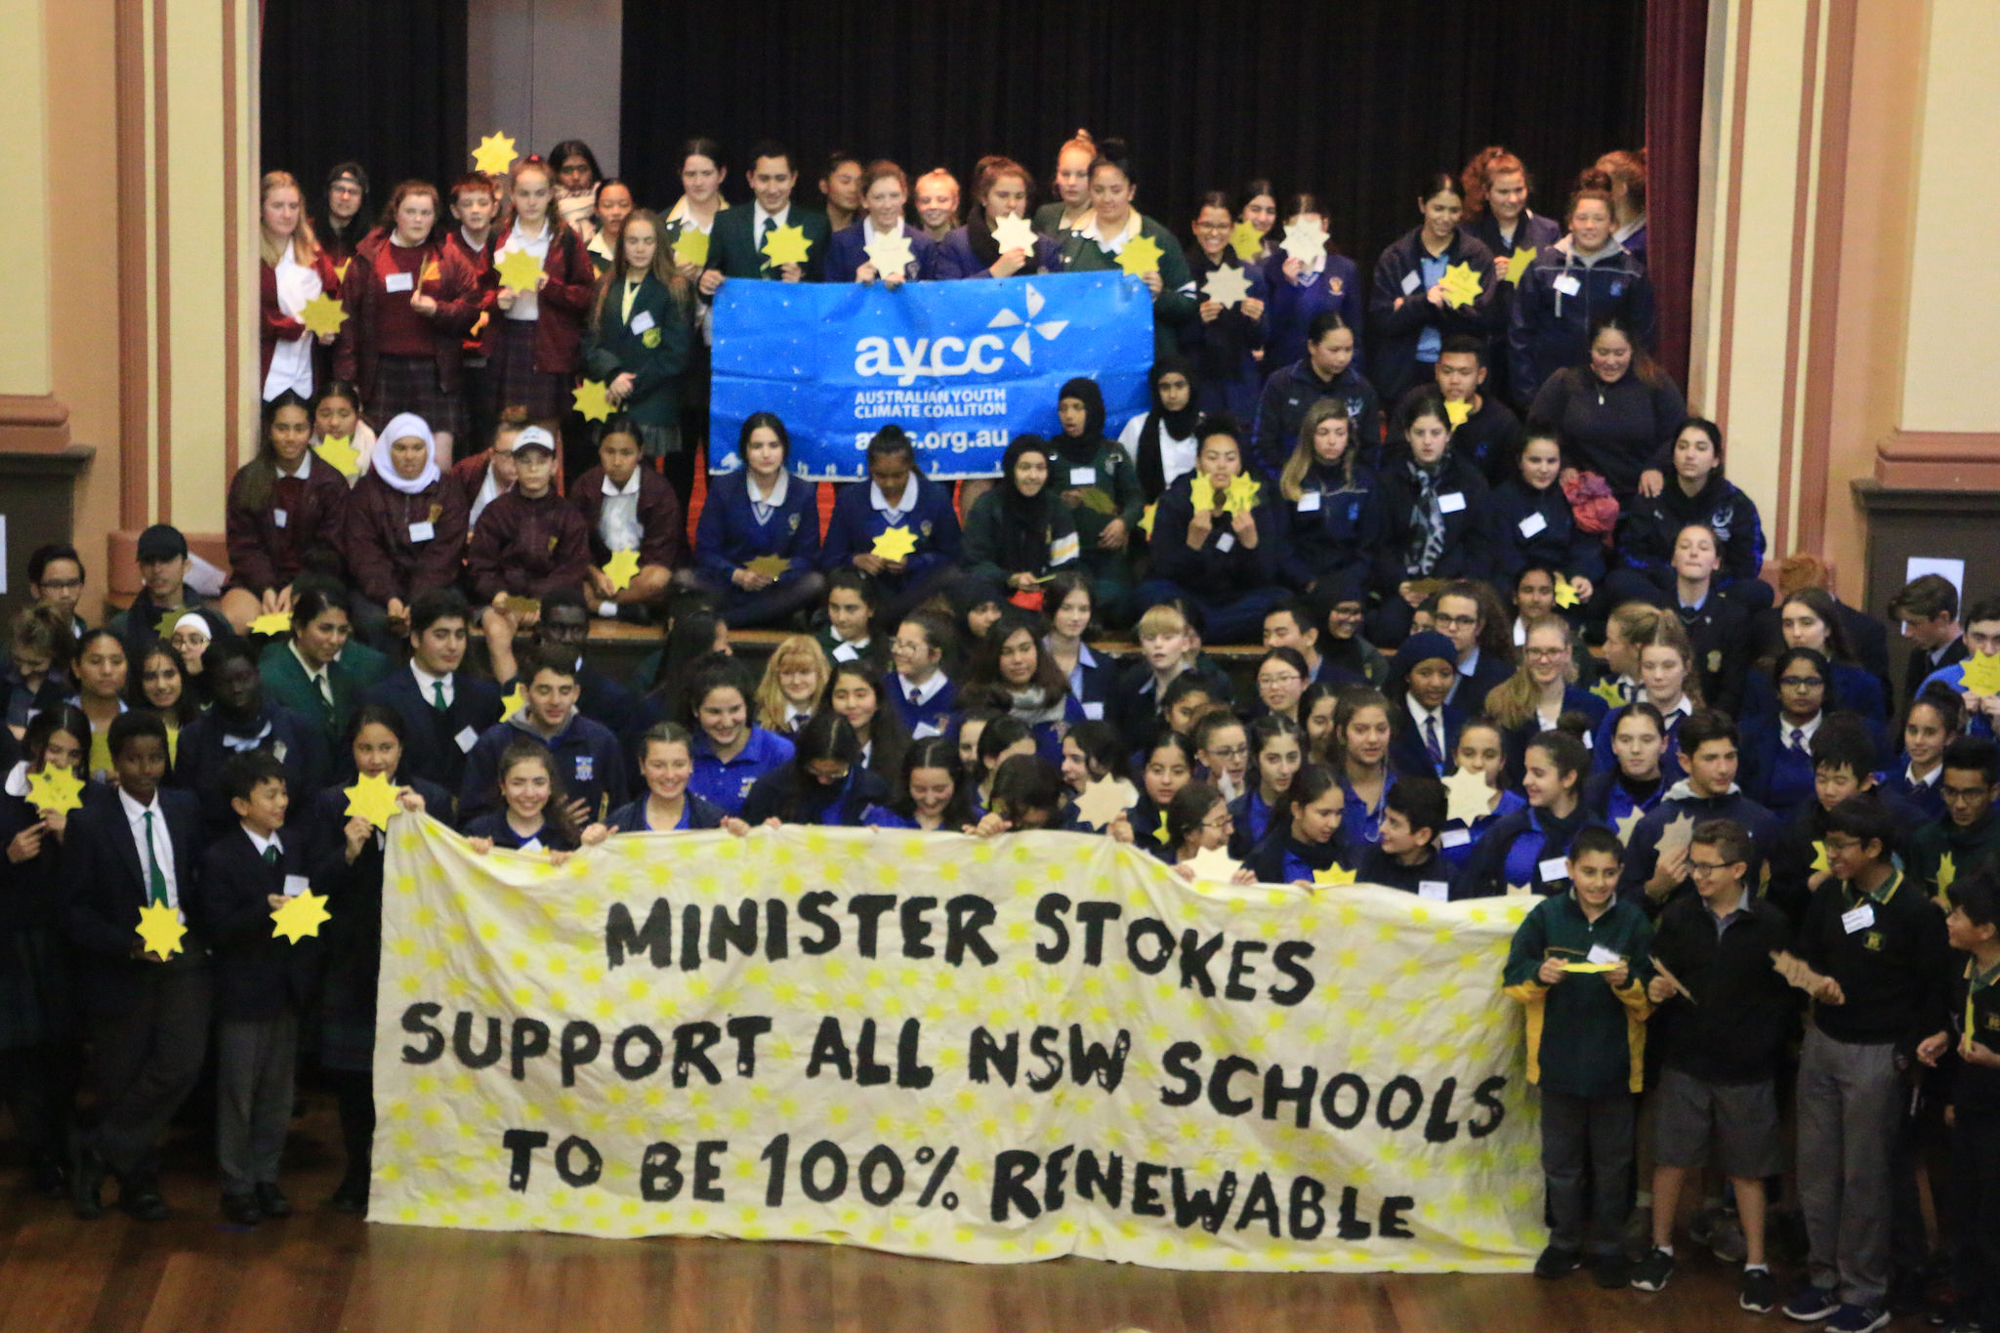 High school leaders in Western Sydney call for renewable energy transition